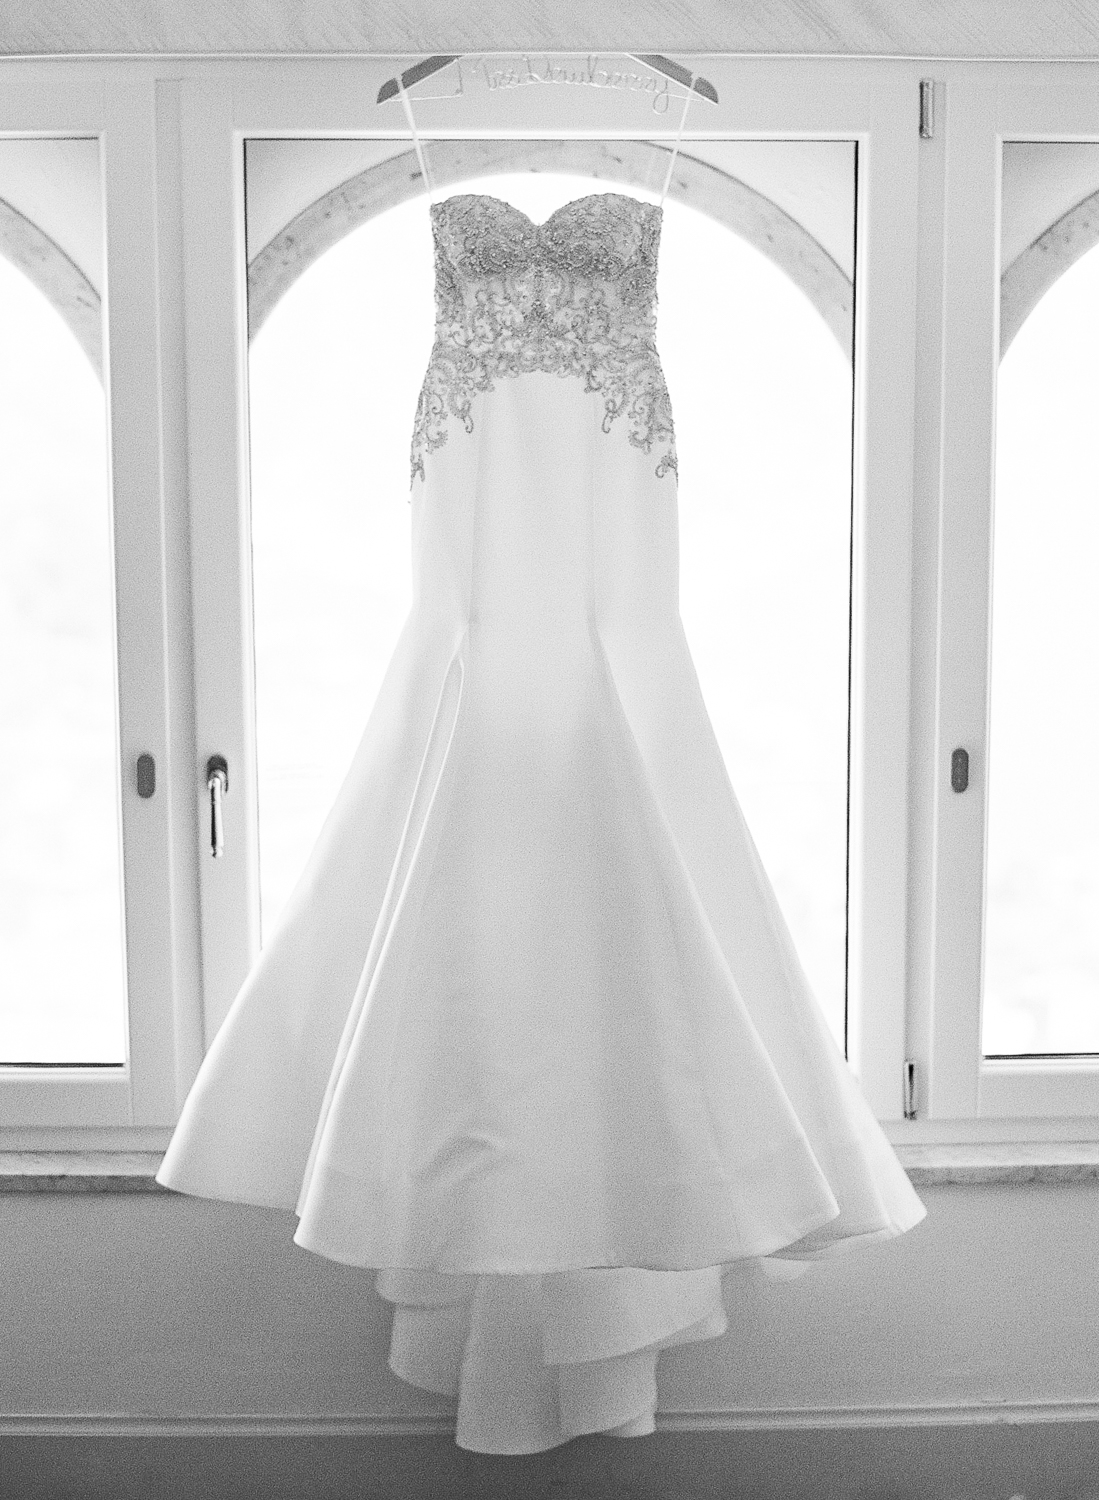 The bride's gown hangs in the window of Hotel Belmond Caruso in Ravello, Italy; Sylvie Gil Photography